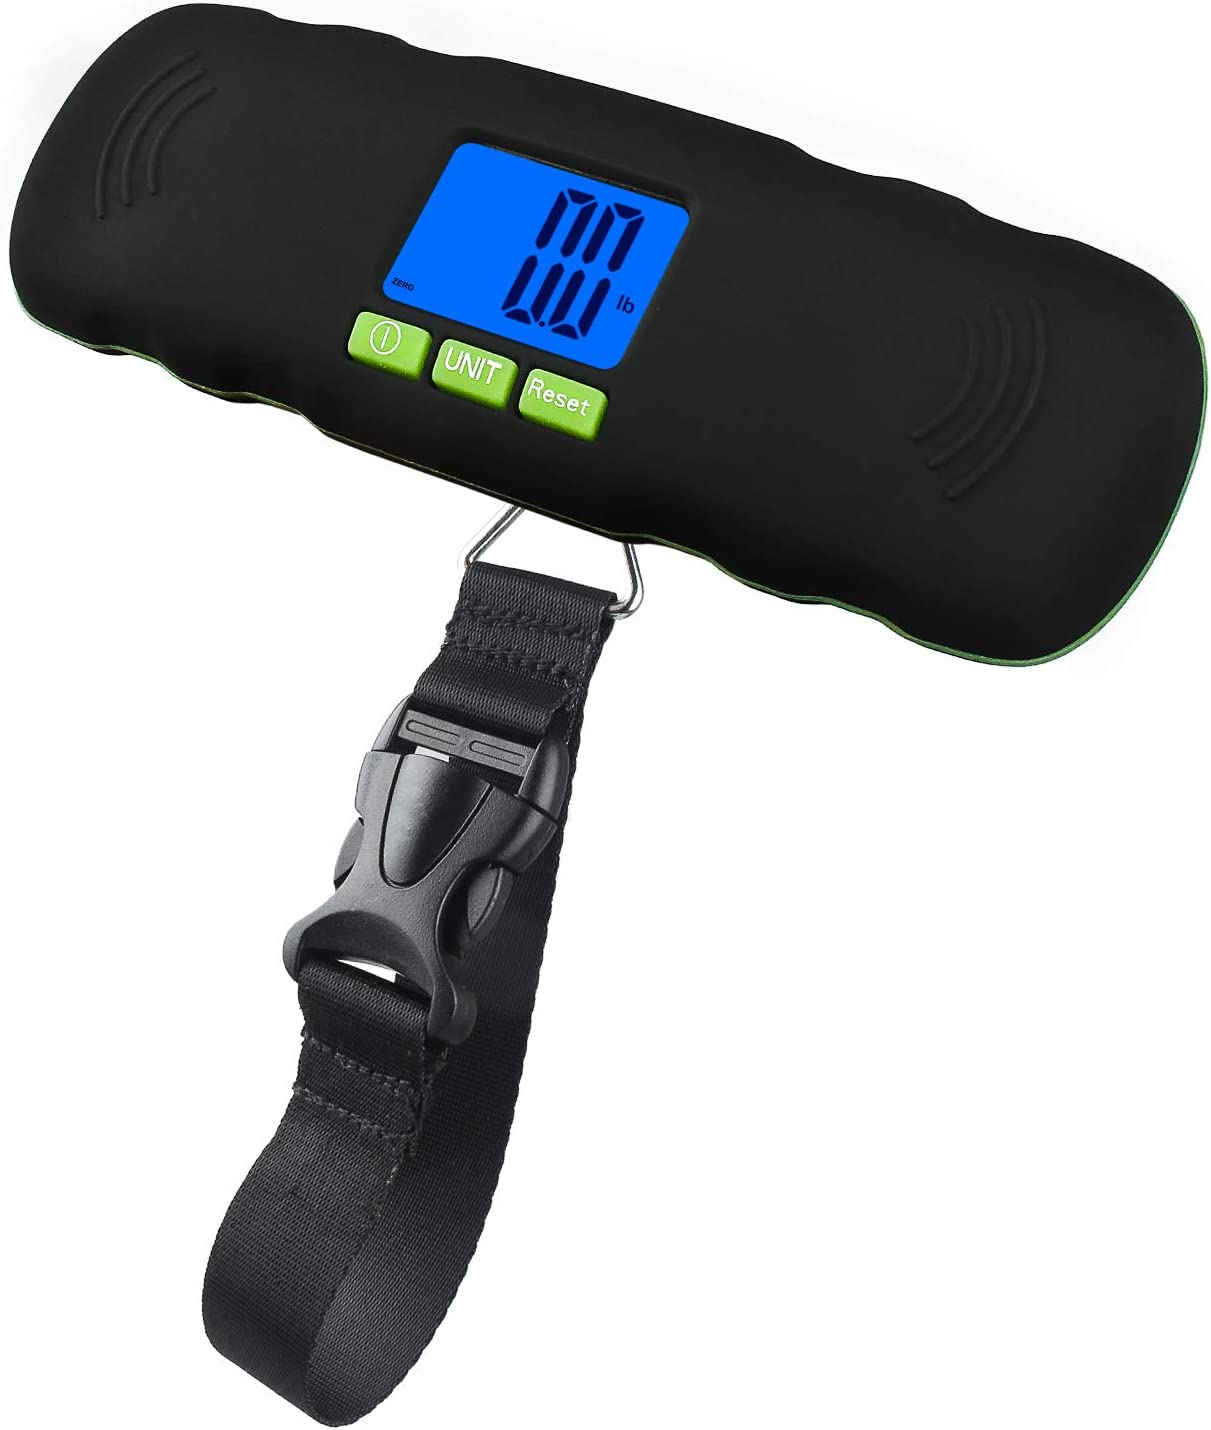 Topics on TV Digital Luggage Scale Ranking TOP14 TBTeekk with Bl Portable Electronic